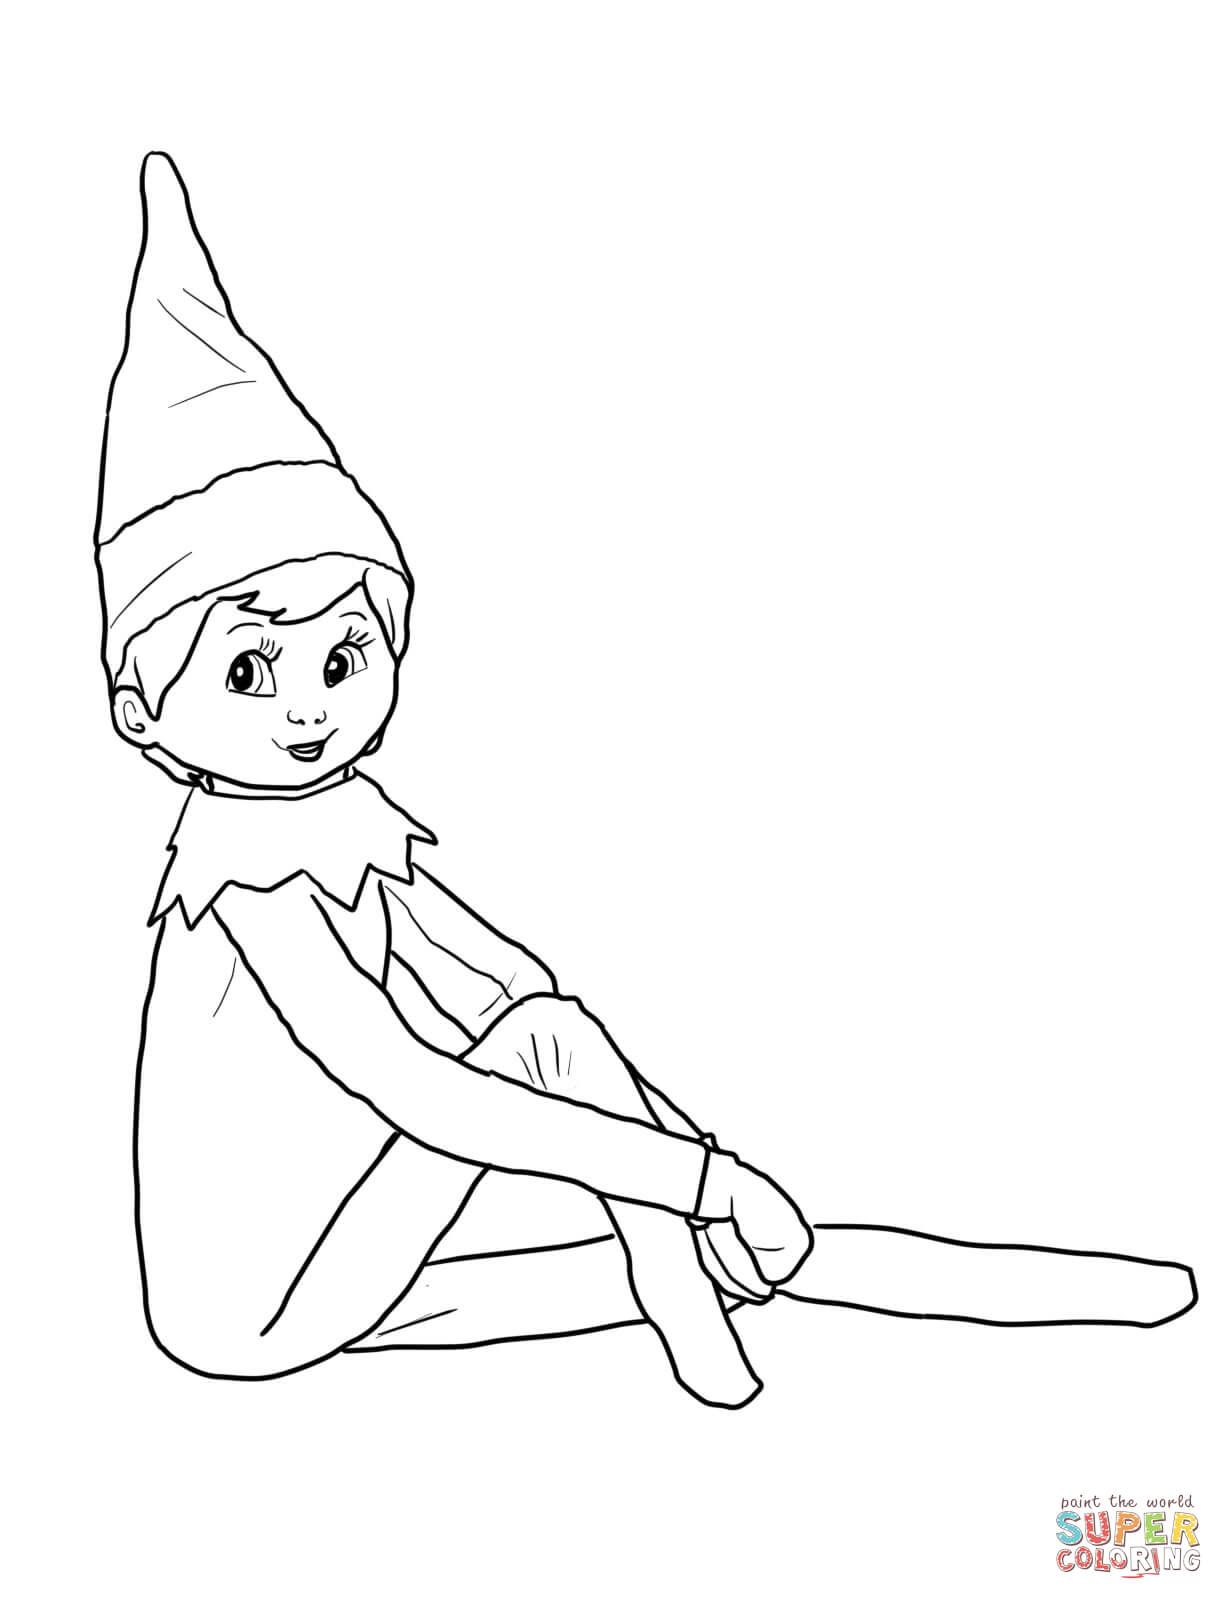 Uncategorized Elf Pictures To Print elf on the shelf super coloring christmas baking ideas coloring